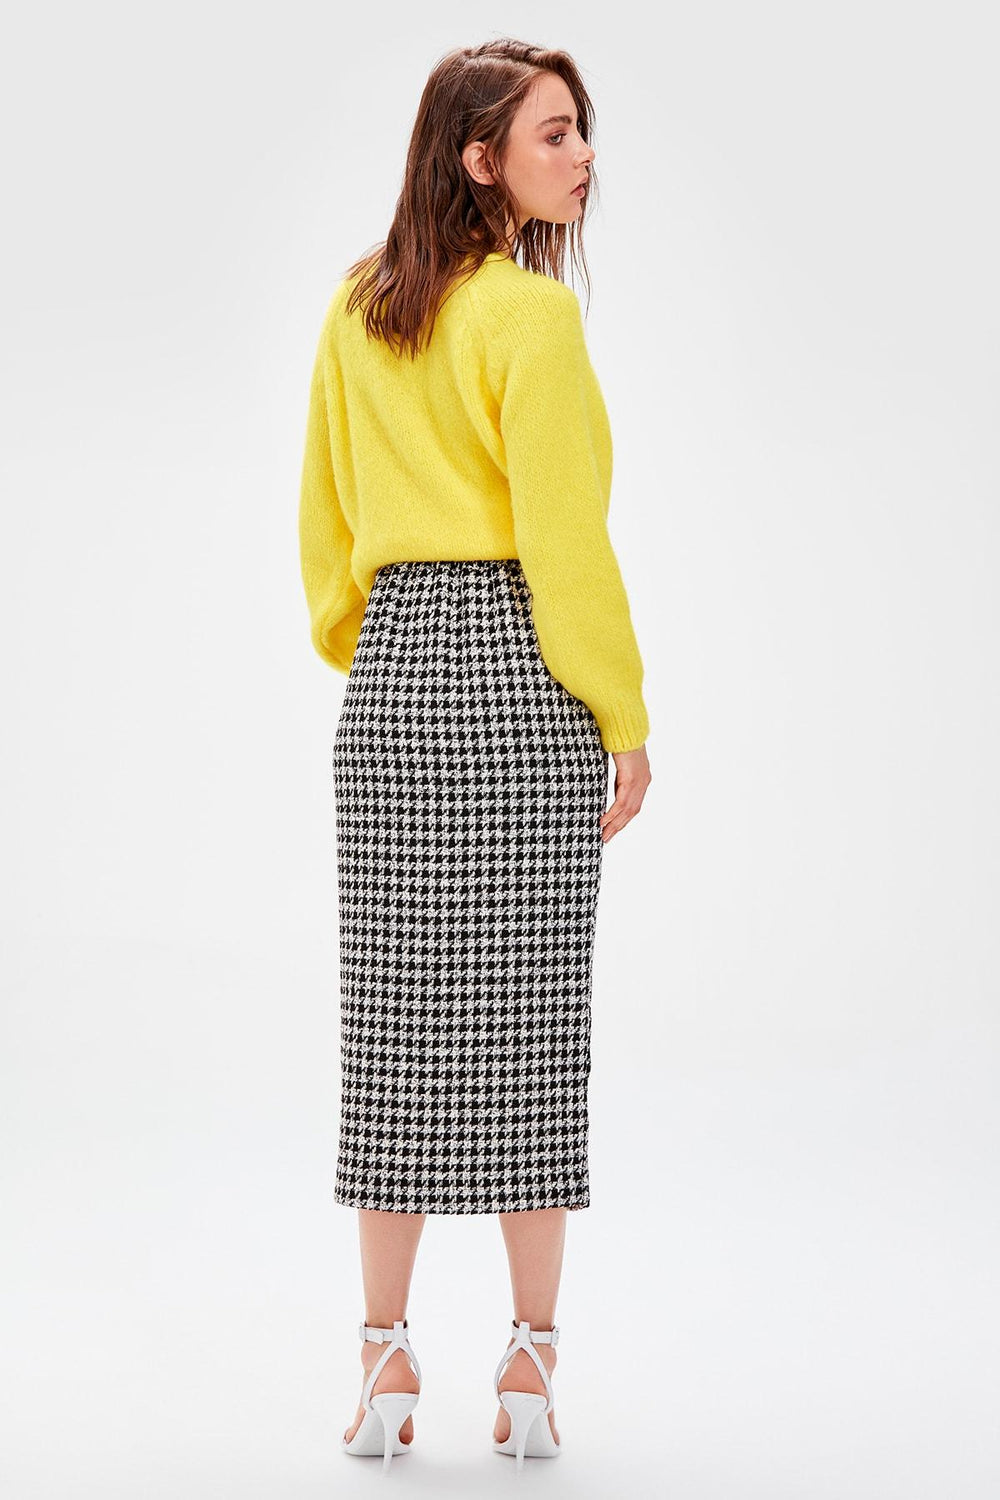 Miss Zut Miss Zut Black Button Detail Skirt Miss Zut &CO